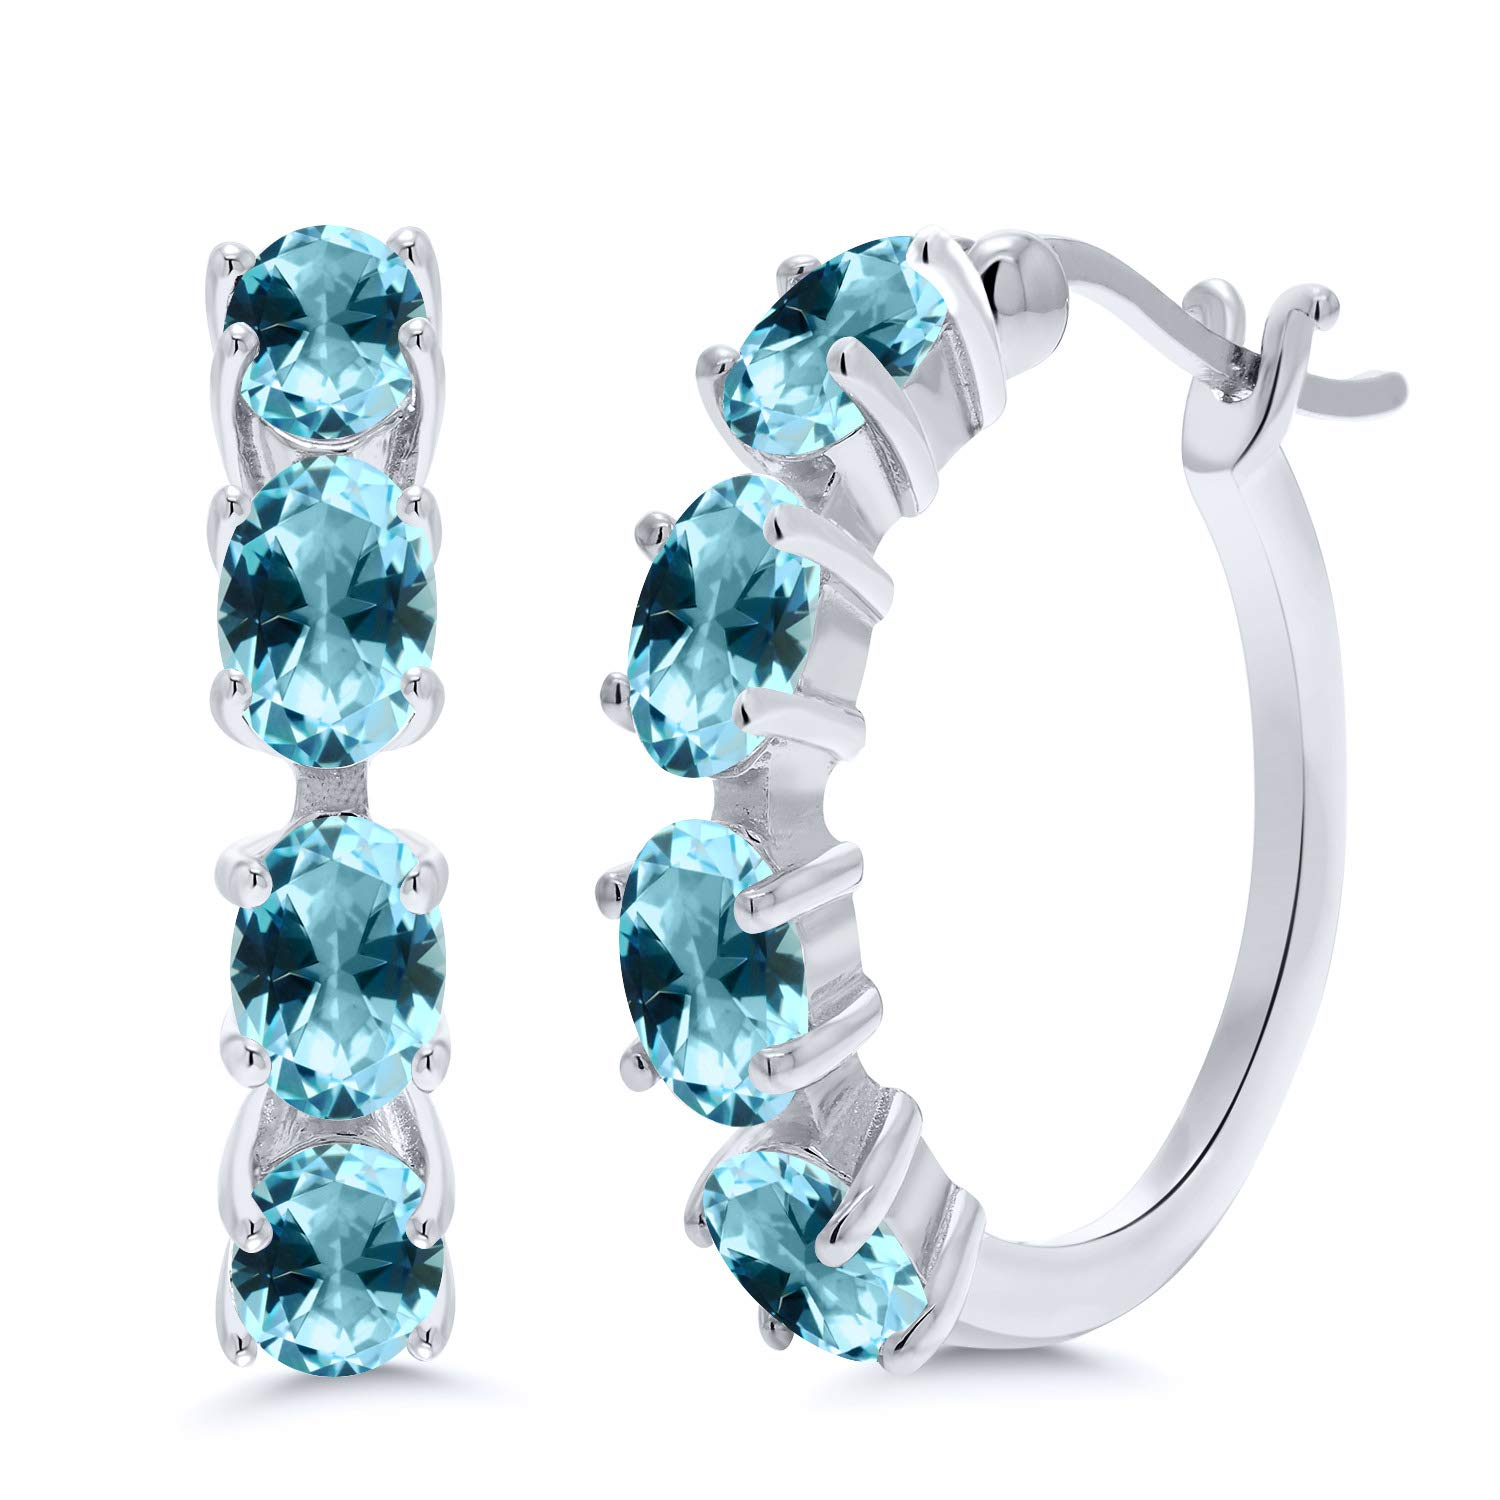 f24d296e84c0f1 Amazon.com  925 Sterling Silver Hoop Earrings Set with Oval Ice Blue Topaz  from Swarovski  Jewelry